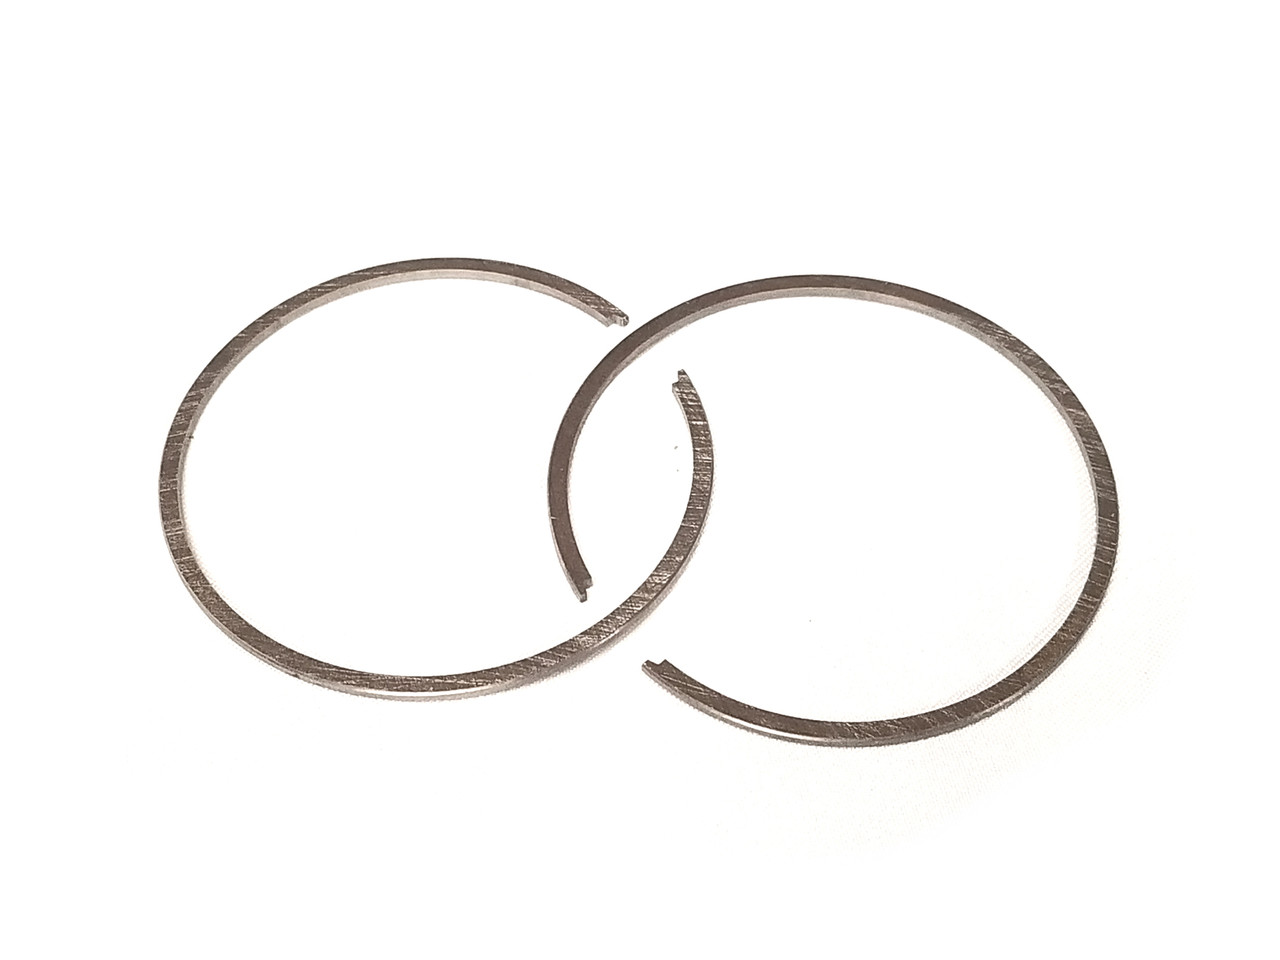 43mm x 1.2mm GI Piston Ring Set, Vespa Piaggio Kinetic